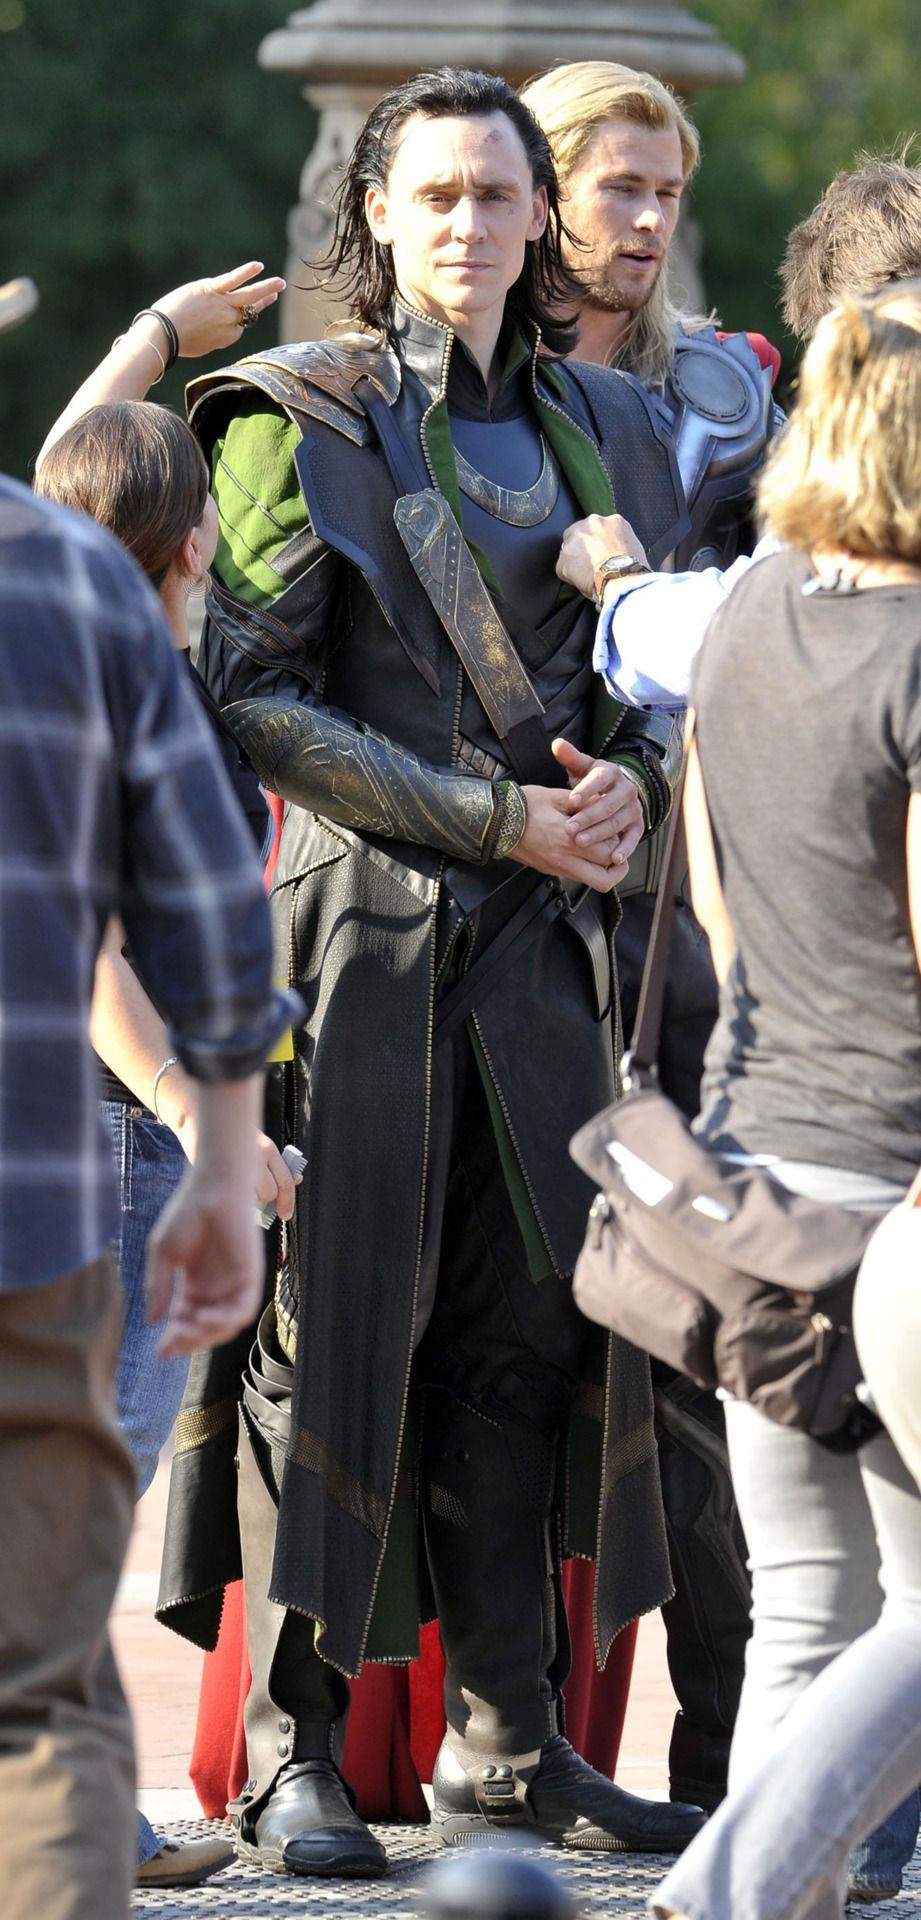 Tom in his Loki get-up